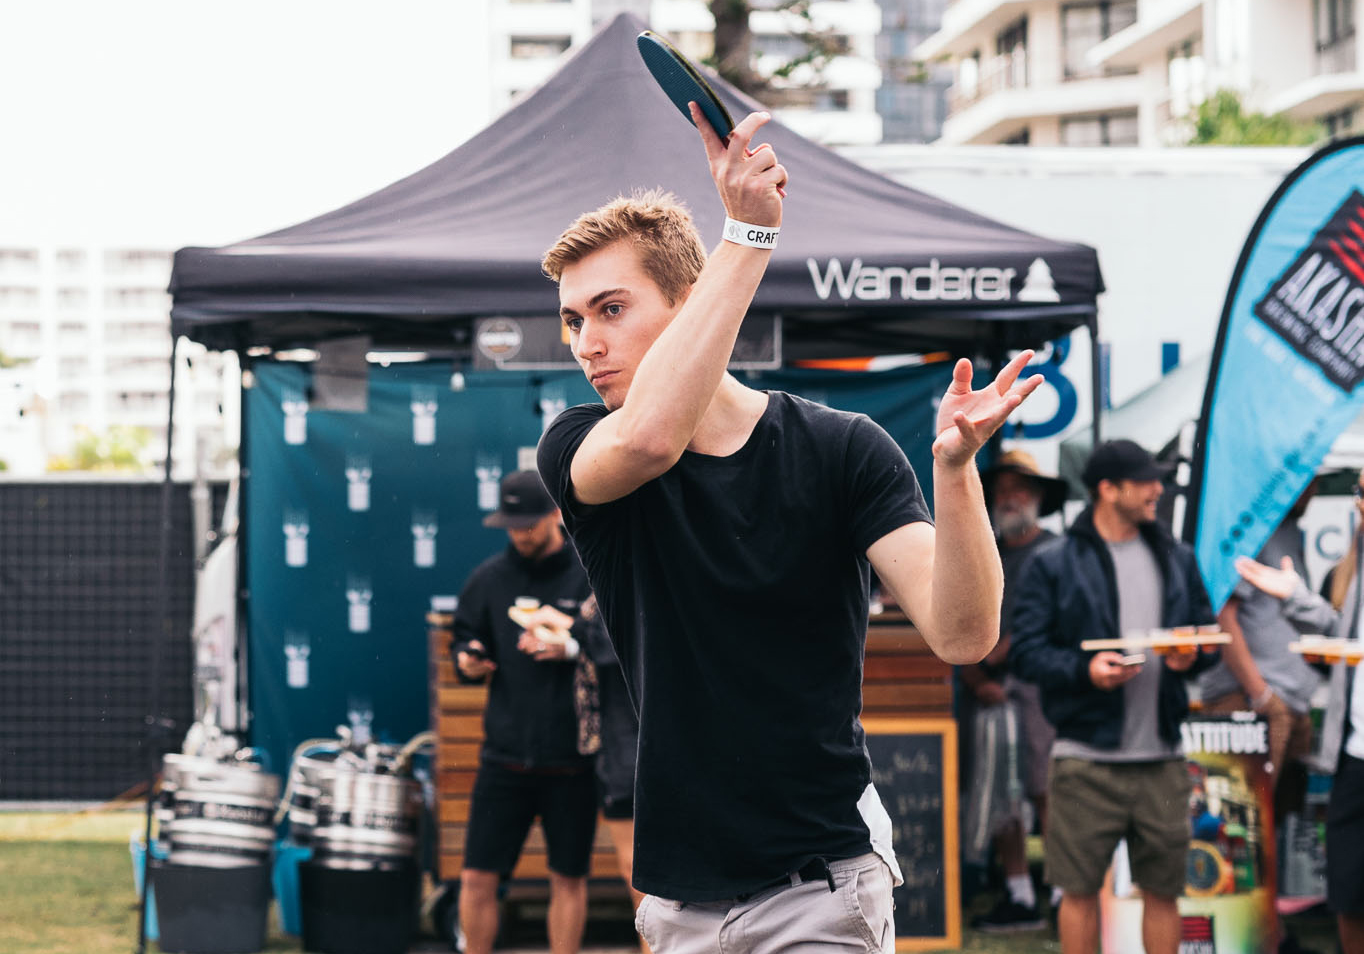 Ping Pong - Grab a bat and try your hand at a bit of ping pong! And if you're really feeling like you've got some mad skills, jump into our annual ping pong competition to take away some sweet prizes.